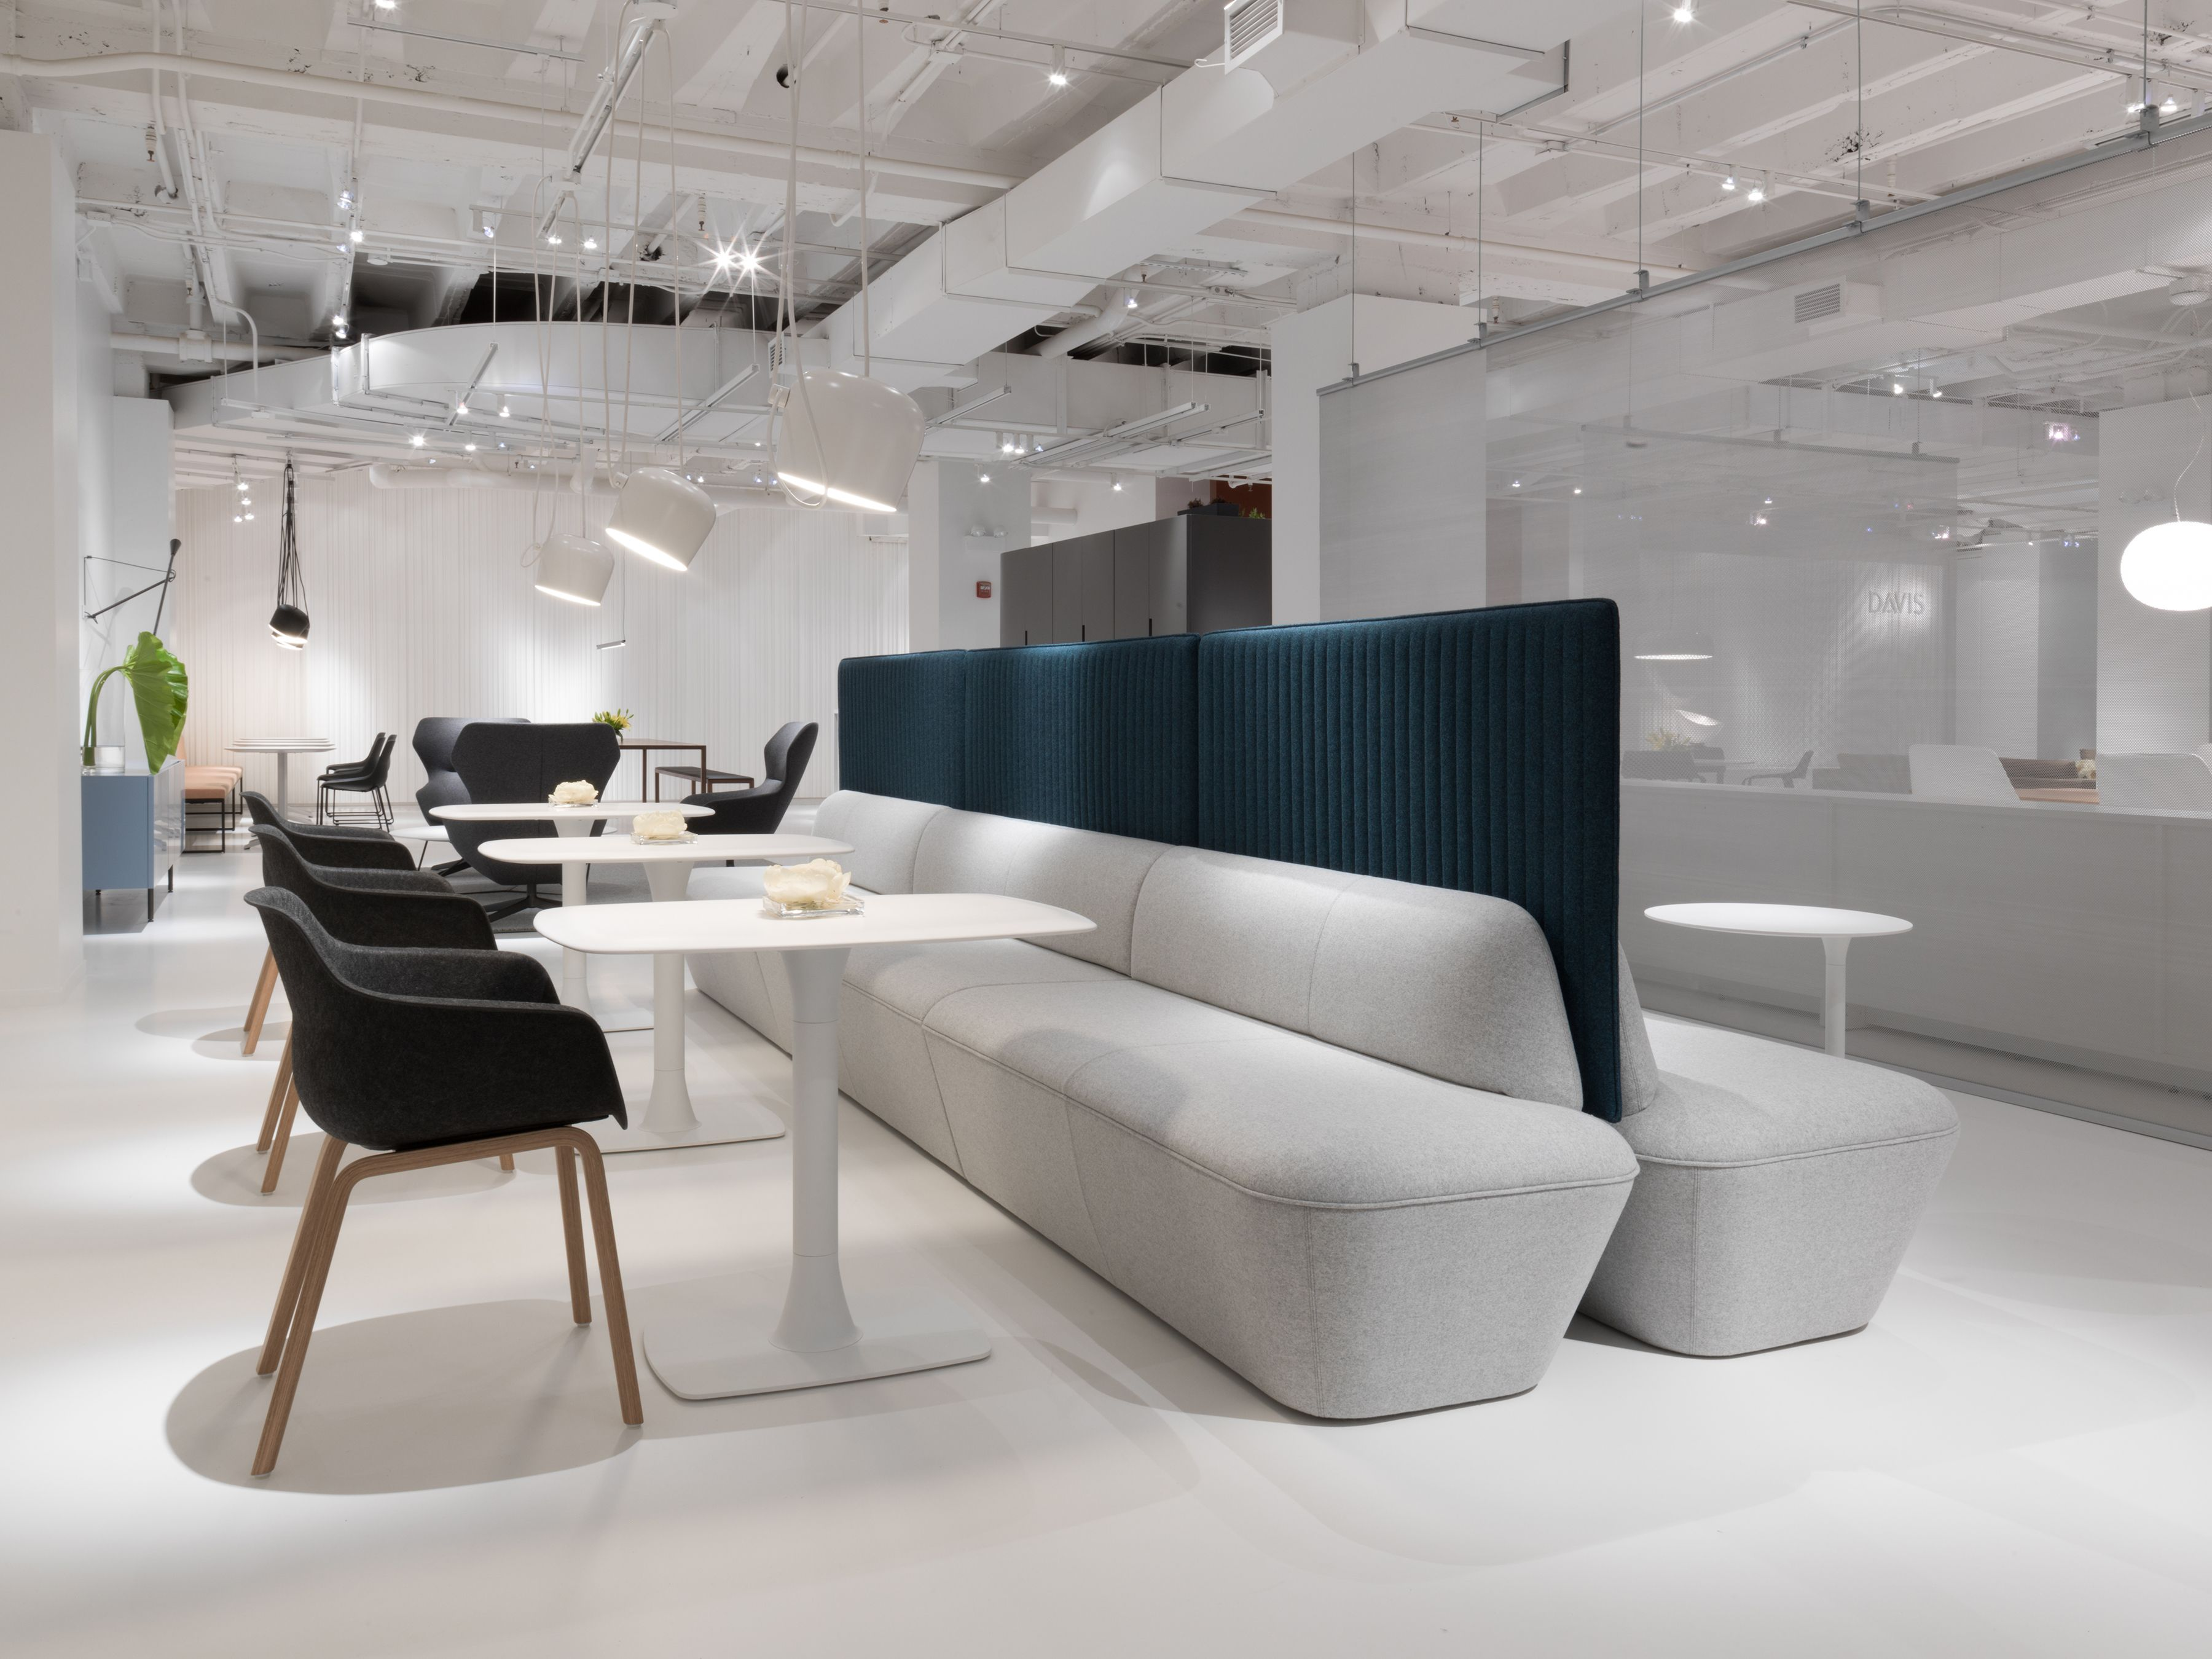 Q6 Lounge and Tables with Codi Chairs from Davis Furniture - #NeoCon2017